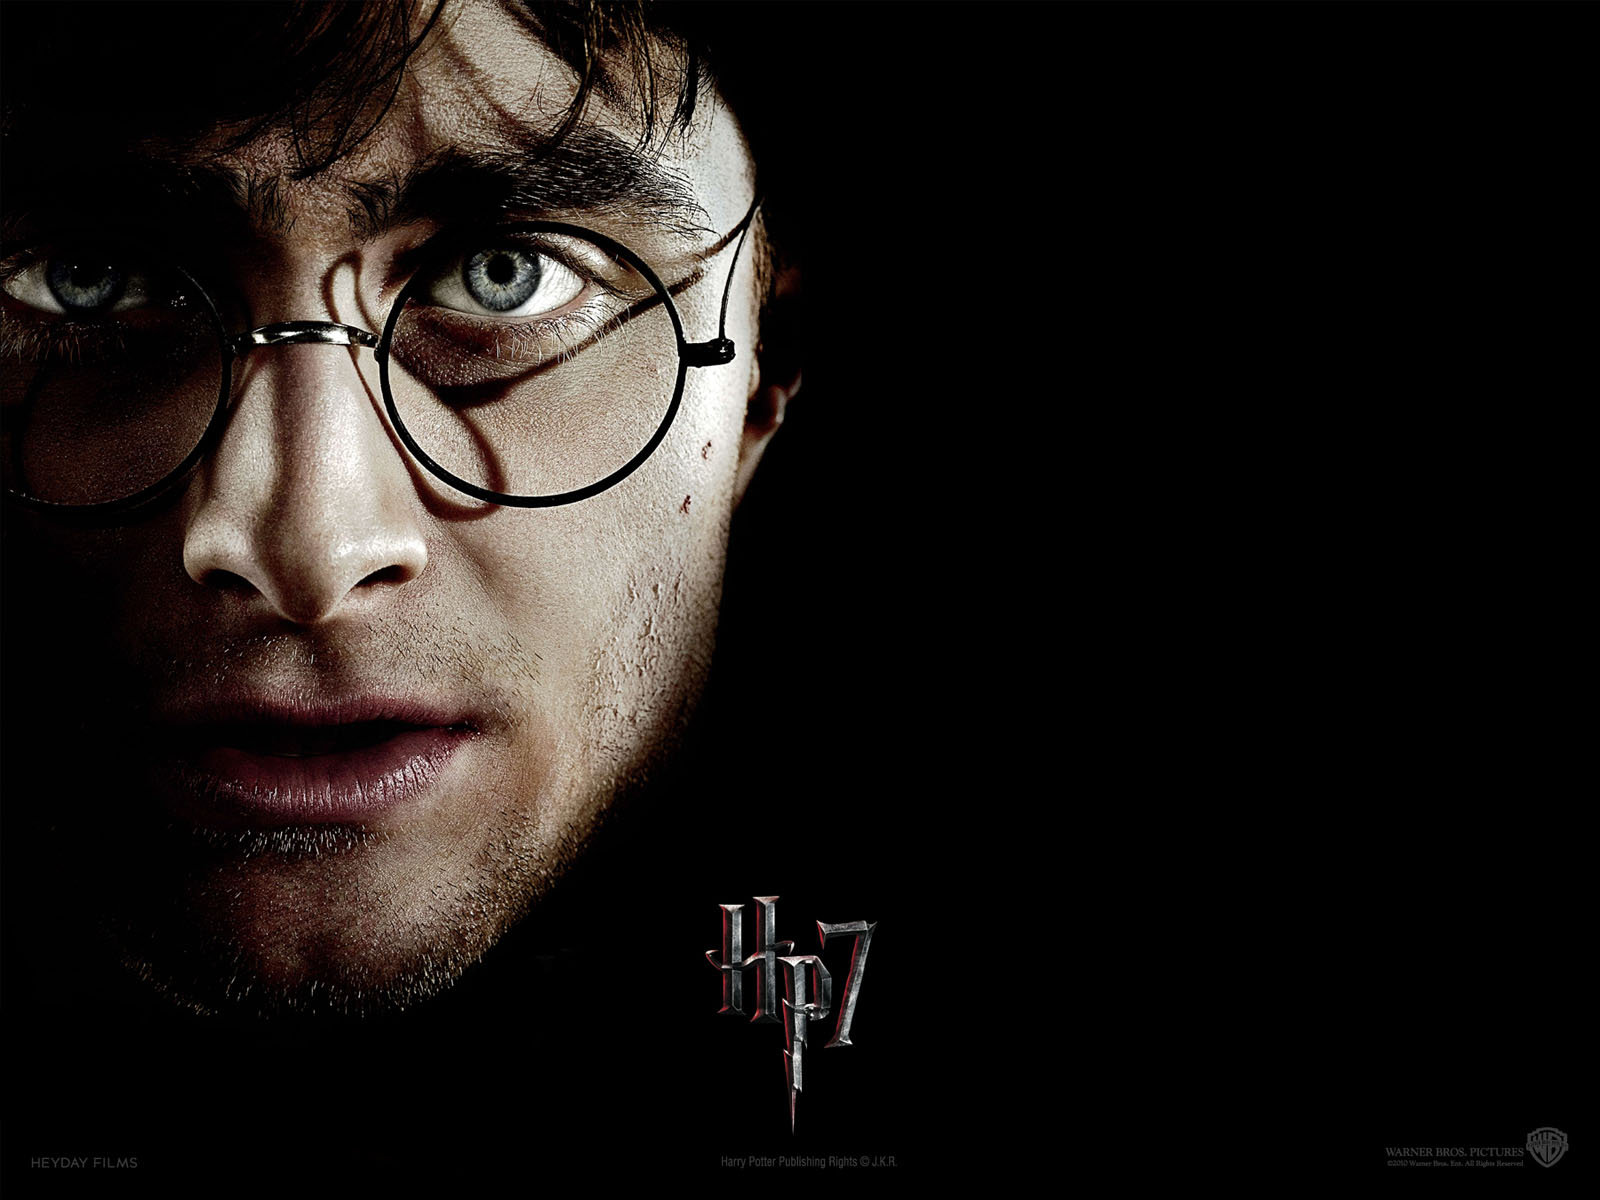 Harry Potter And The Deathly Hallows Part 2 HD desktop  - harry potter deathly hallows part ii wallpapers